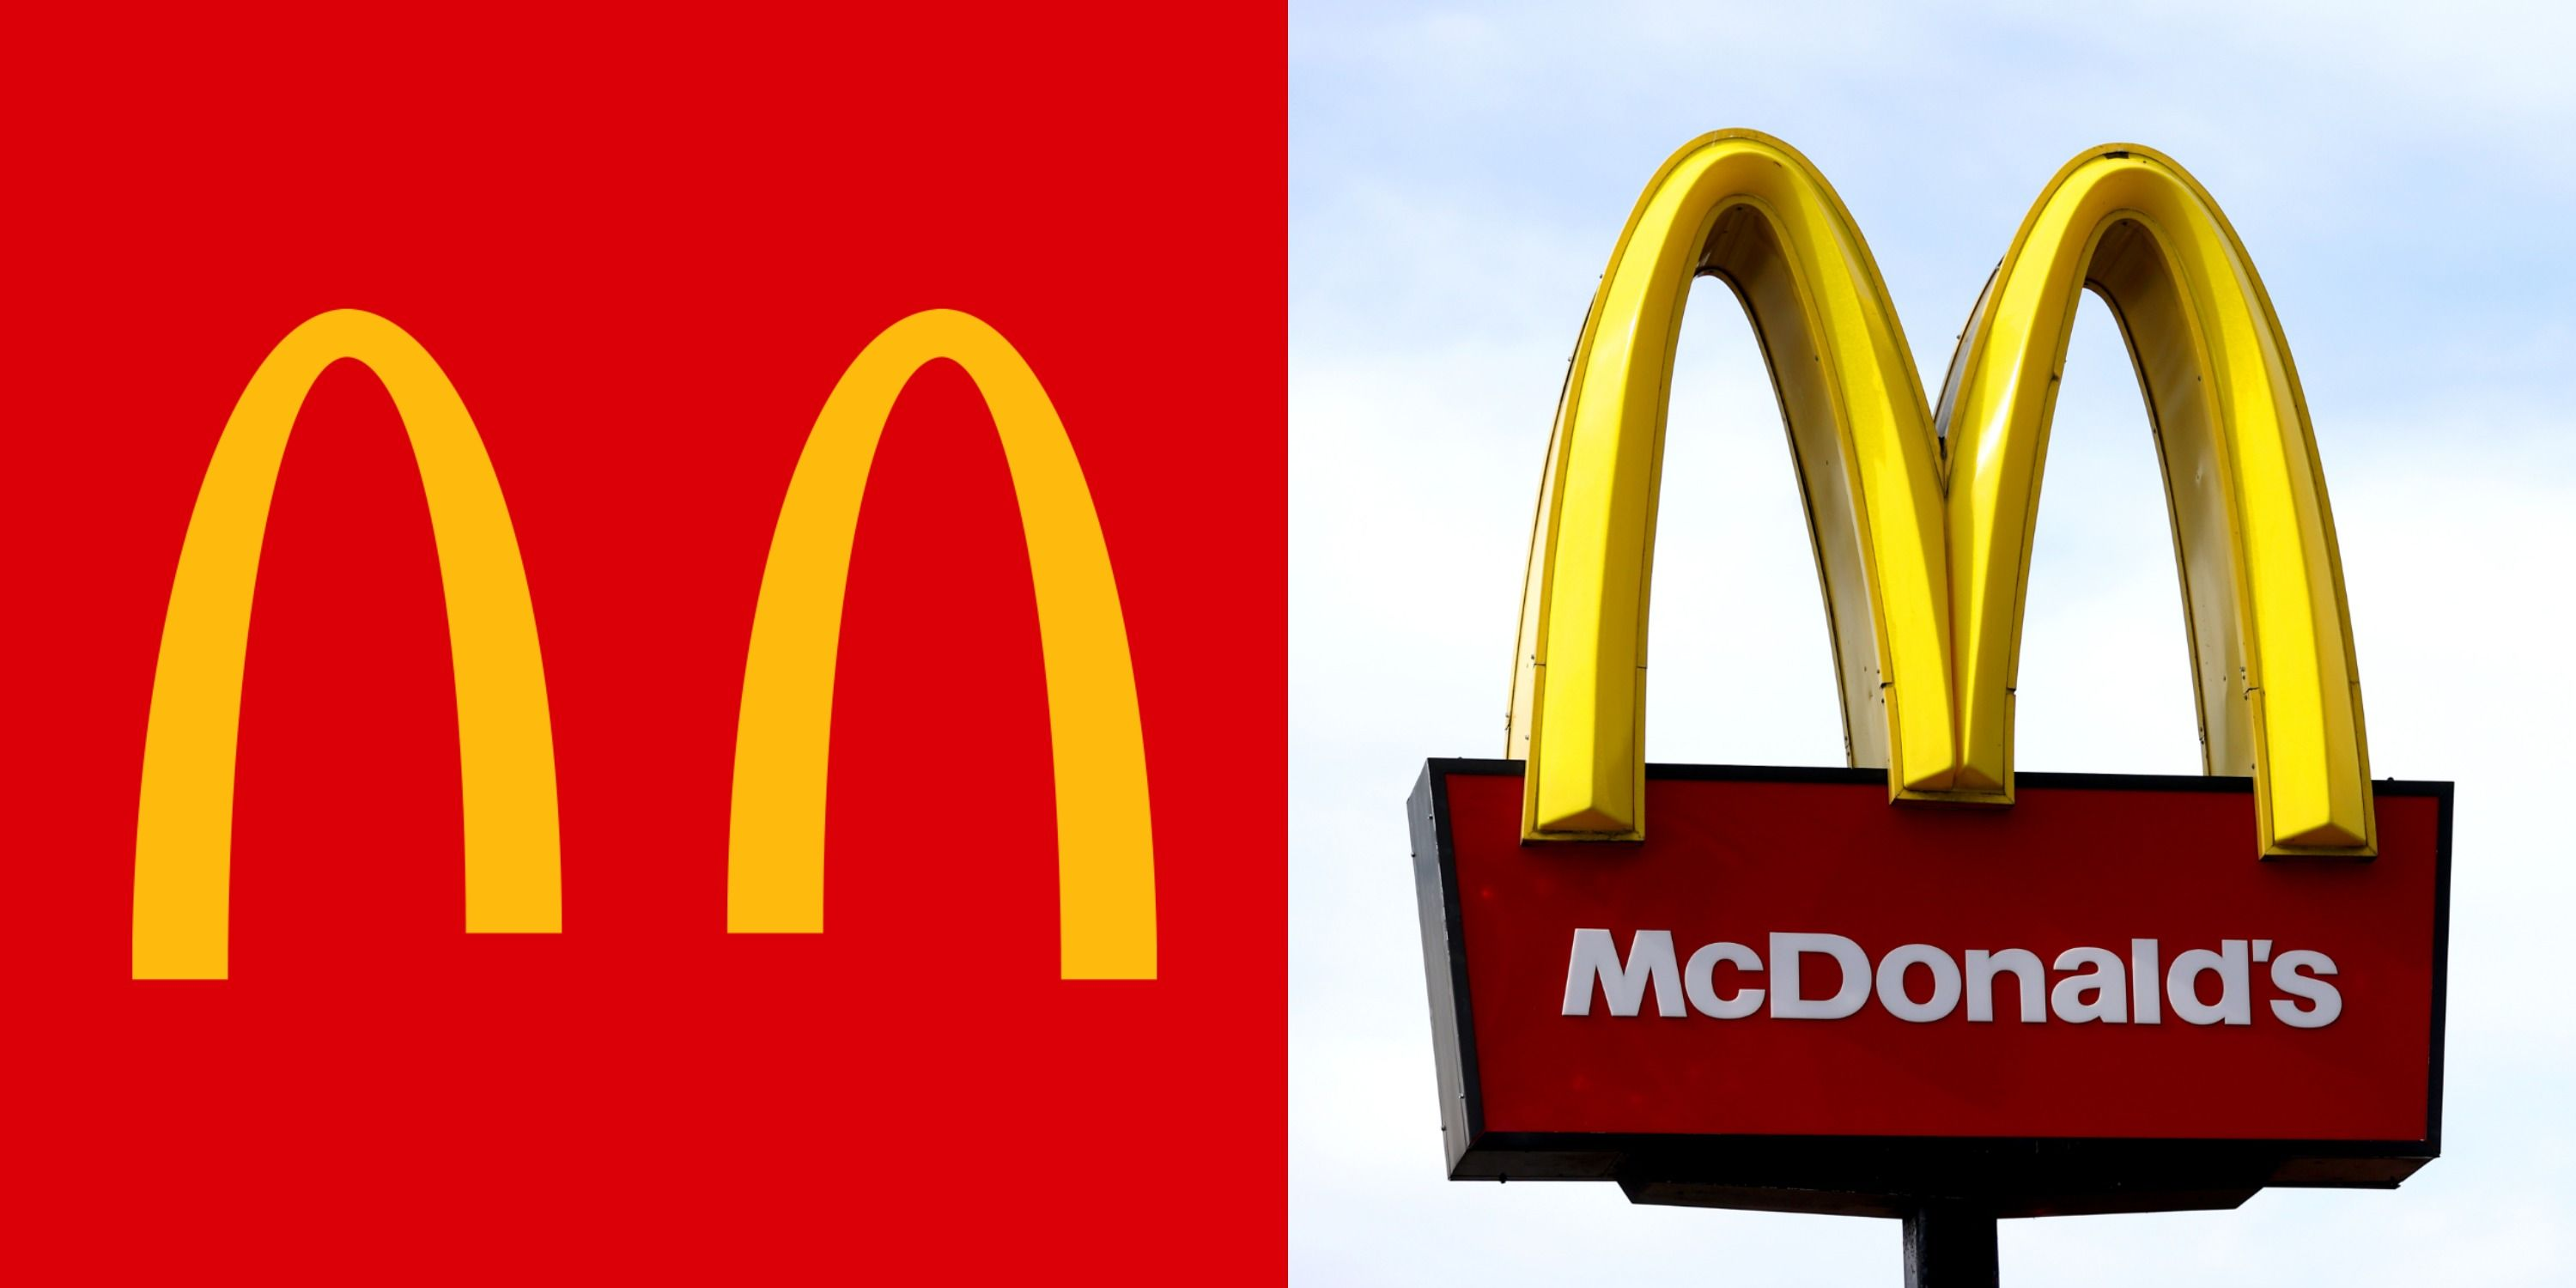 McDonald's Brazil Separated The Golden Arches In Favor Of Social Distancing